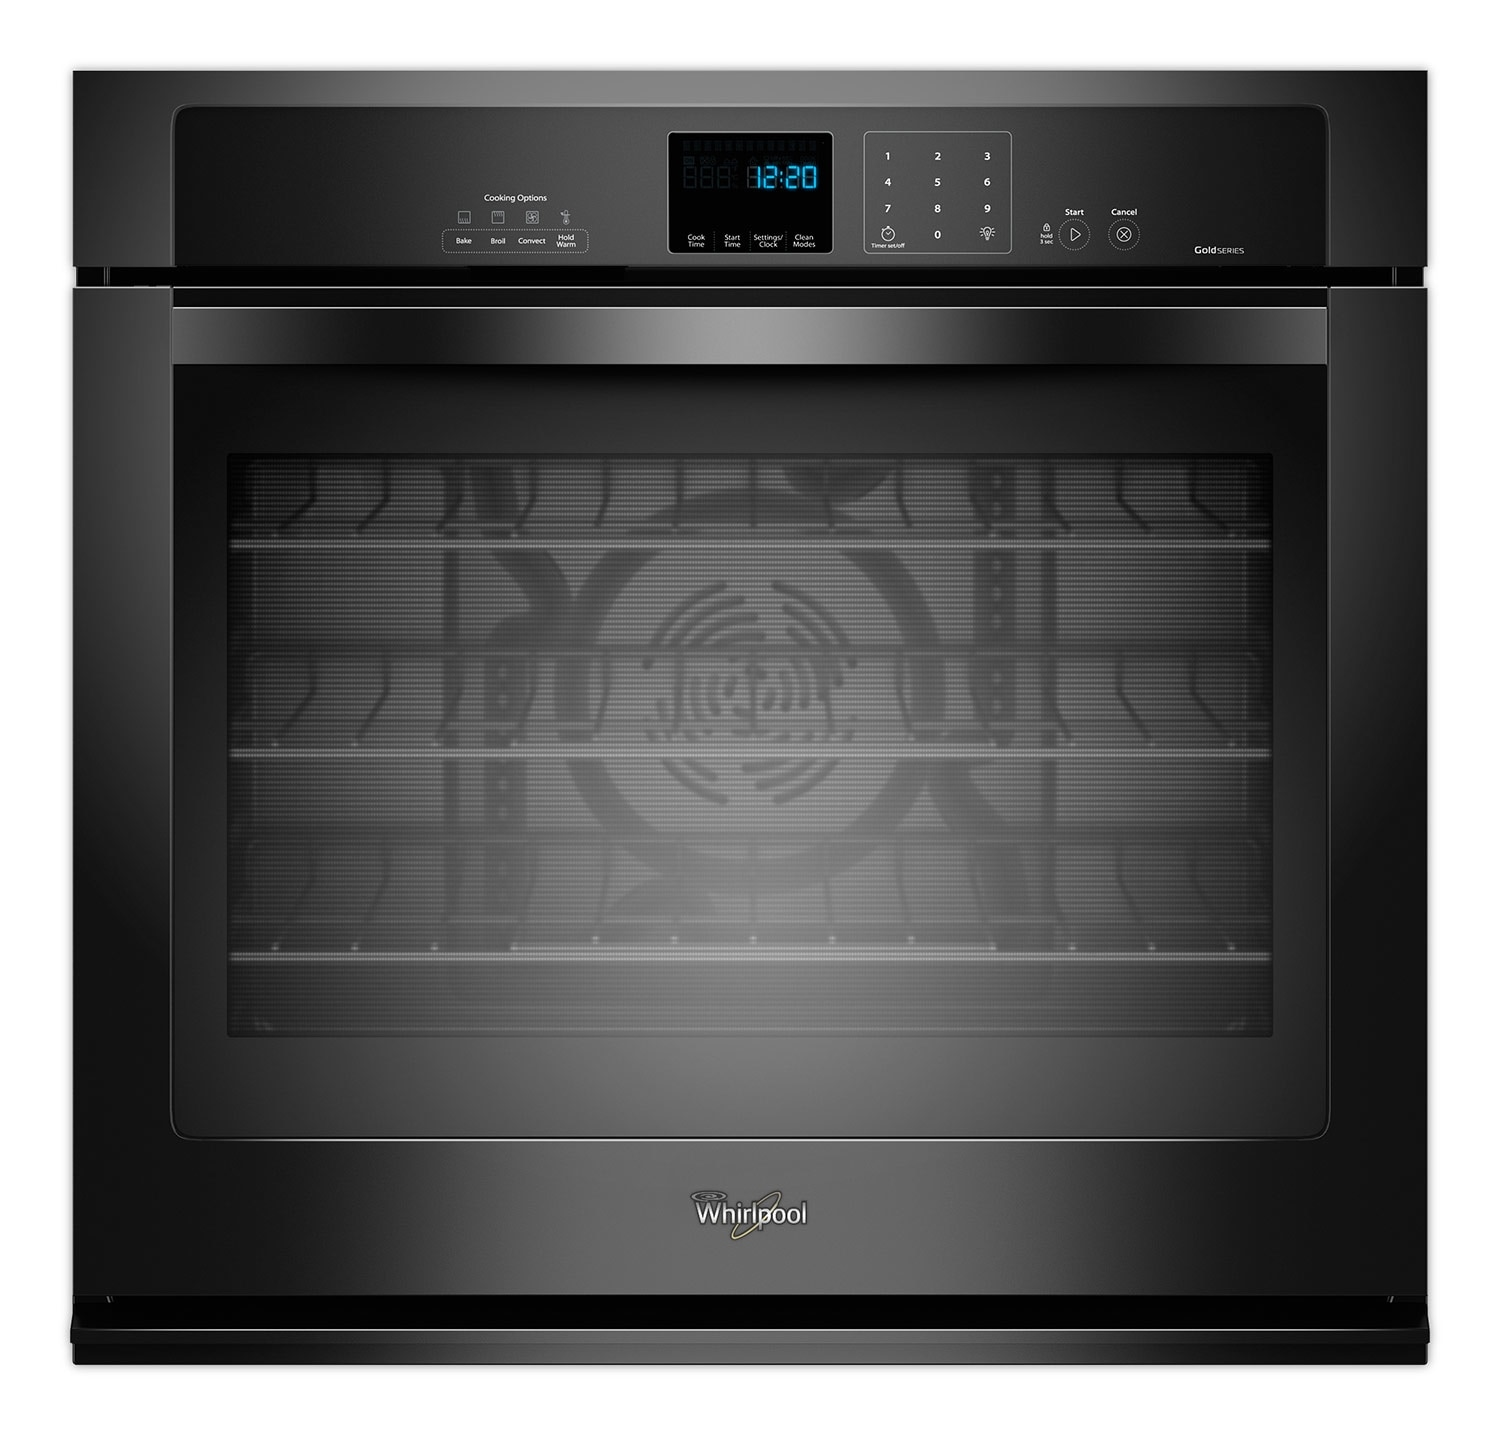 Whirlpool Black Wall Oven (5 Cu. Ft.) - WOS92EC0AB